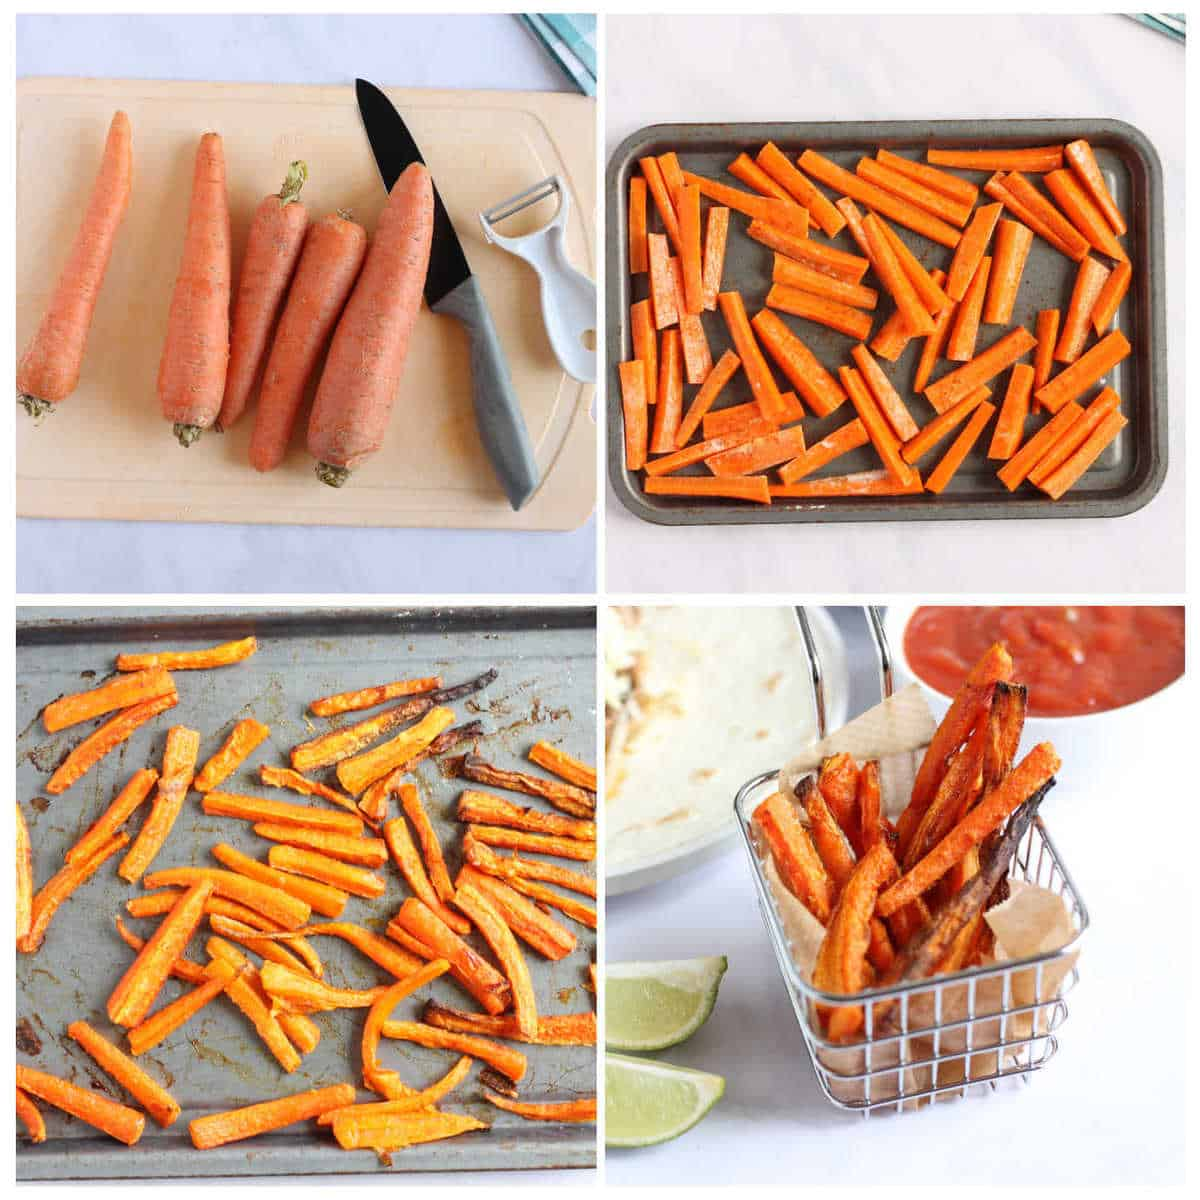 Step by step photo instructions for making baked carrot fires (chips)